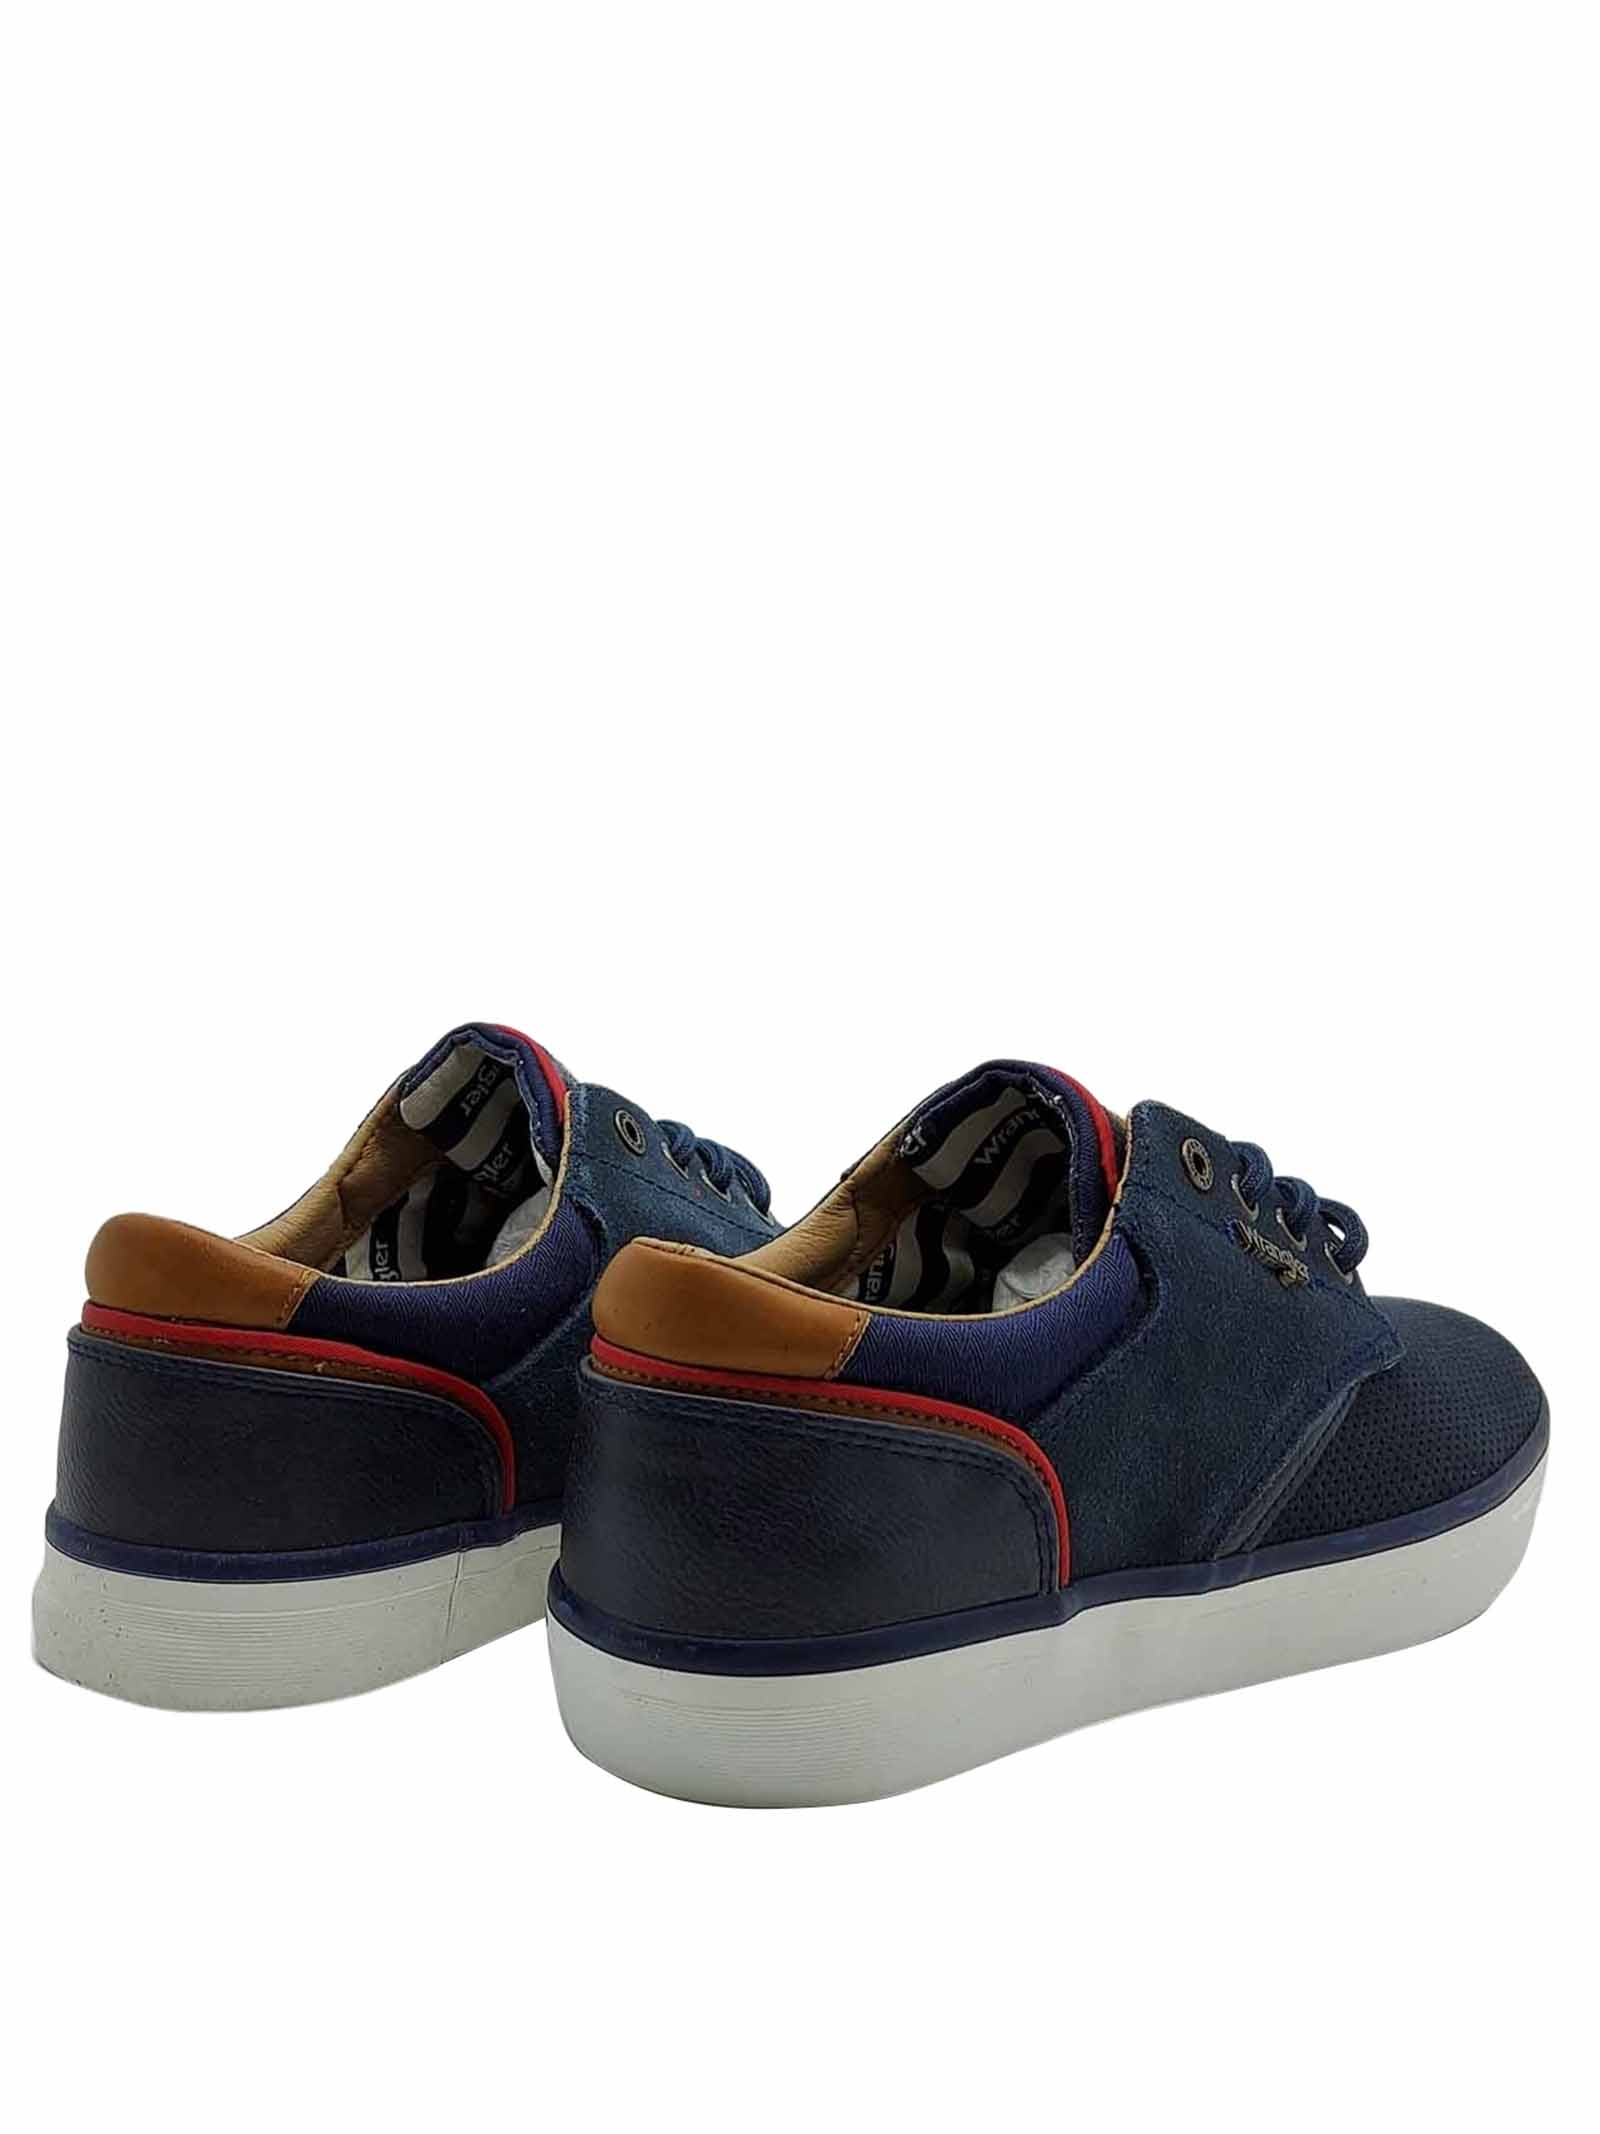 Men's Shoes Monument Sneakers in Blue Perforated Suede and Rubber Bottom Wrangler | Sneakers | WM11113A016